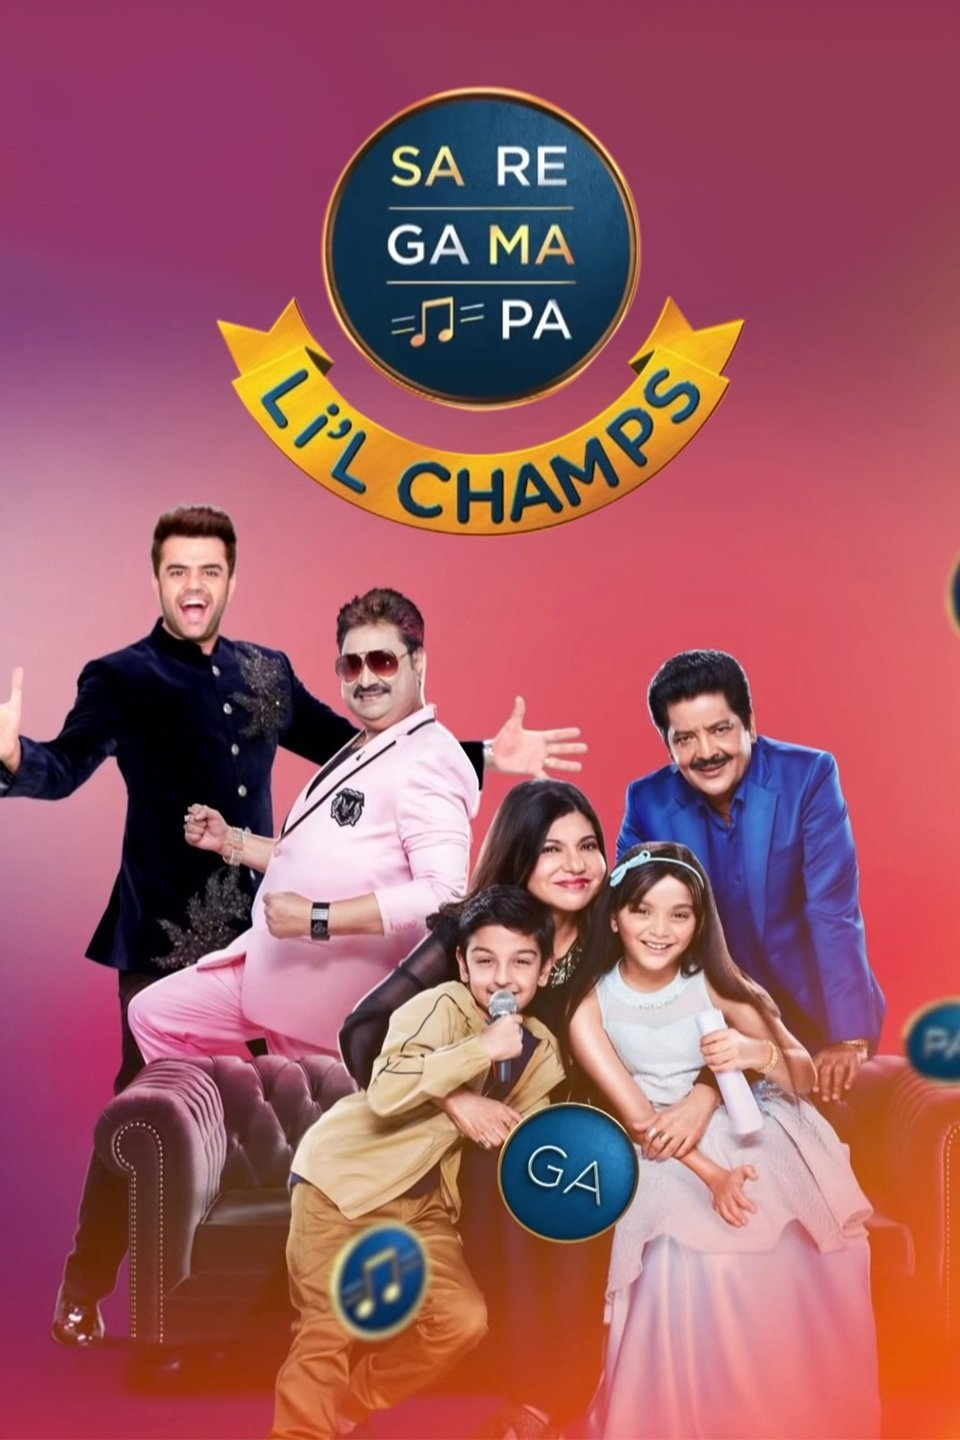 Kapil Sharma India Best Dancer Sa Re Ga Ma Pa Lil Champs 26th September 2020 All DL